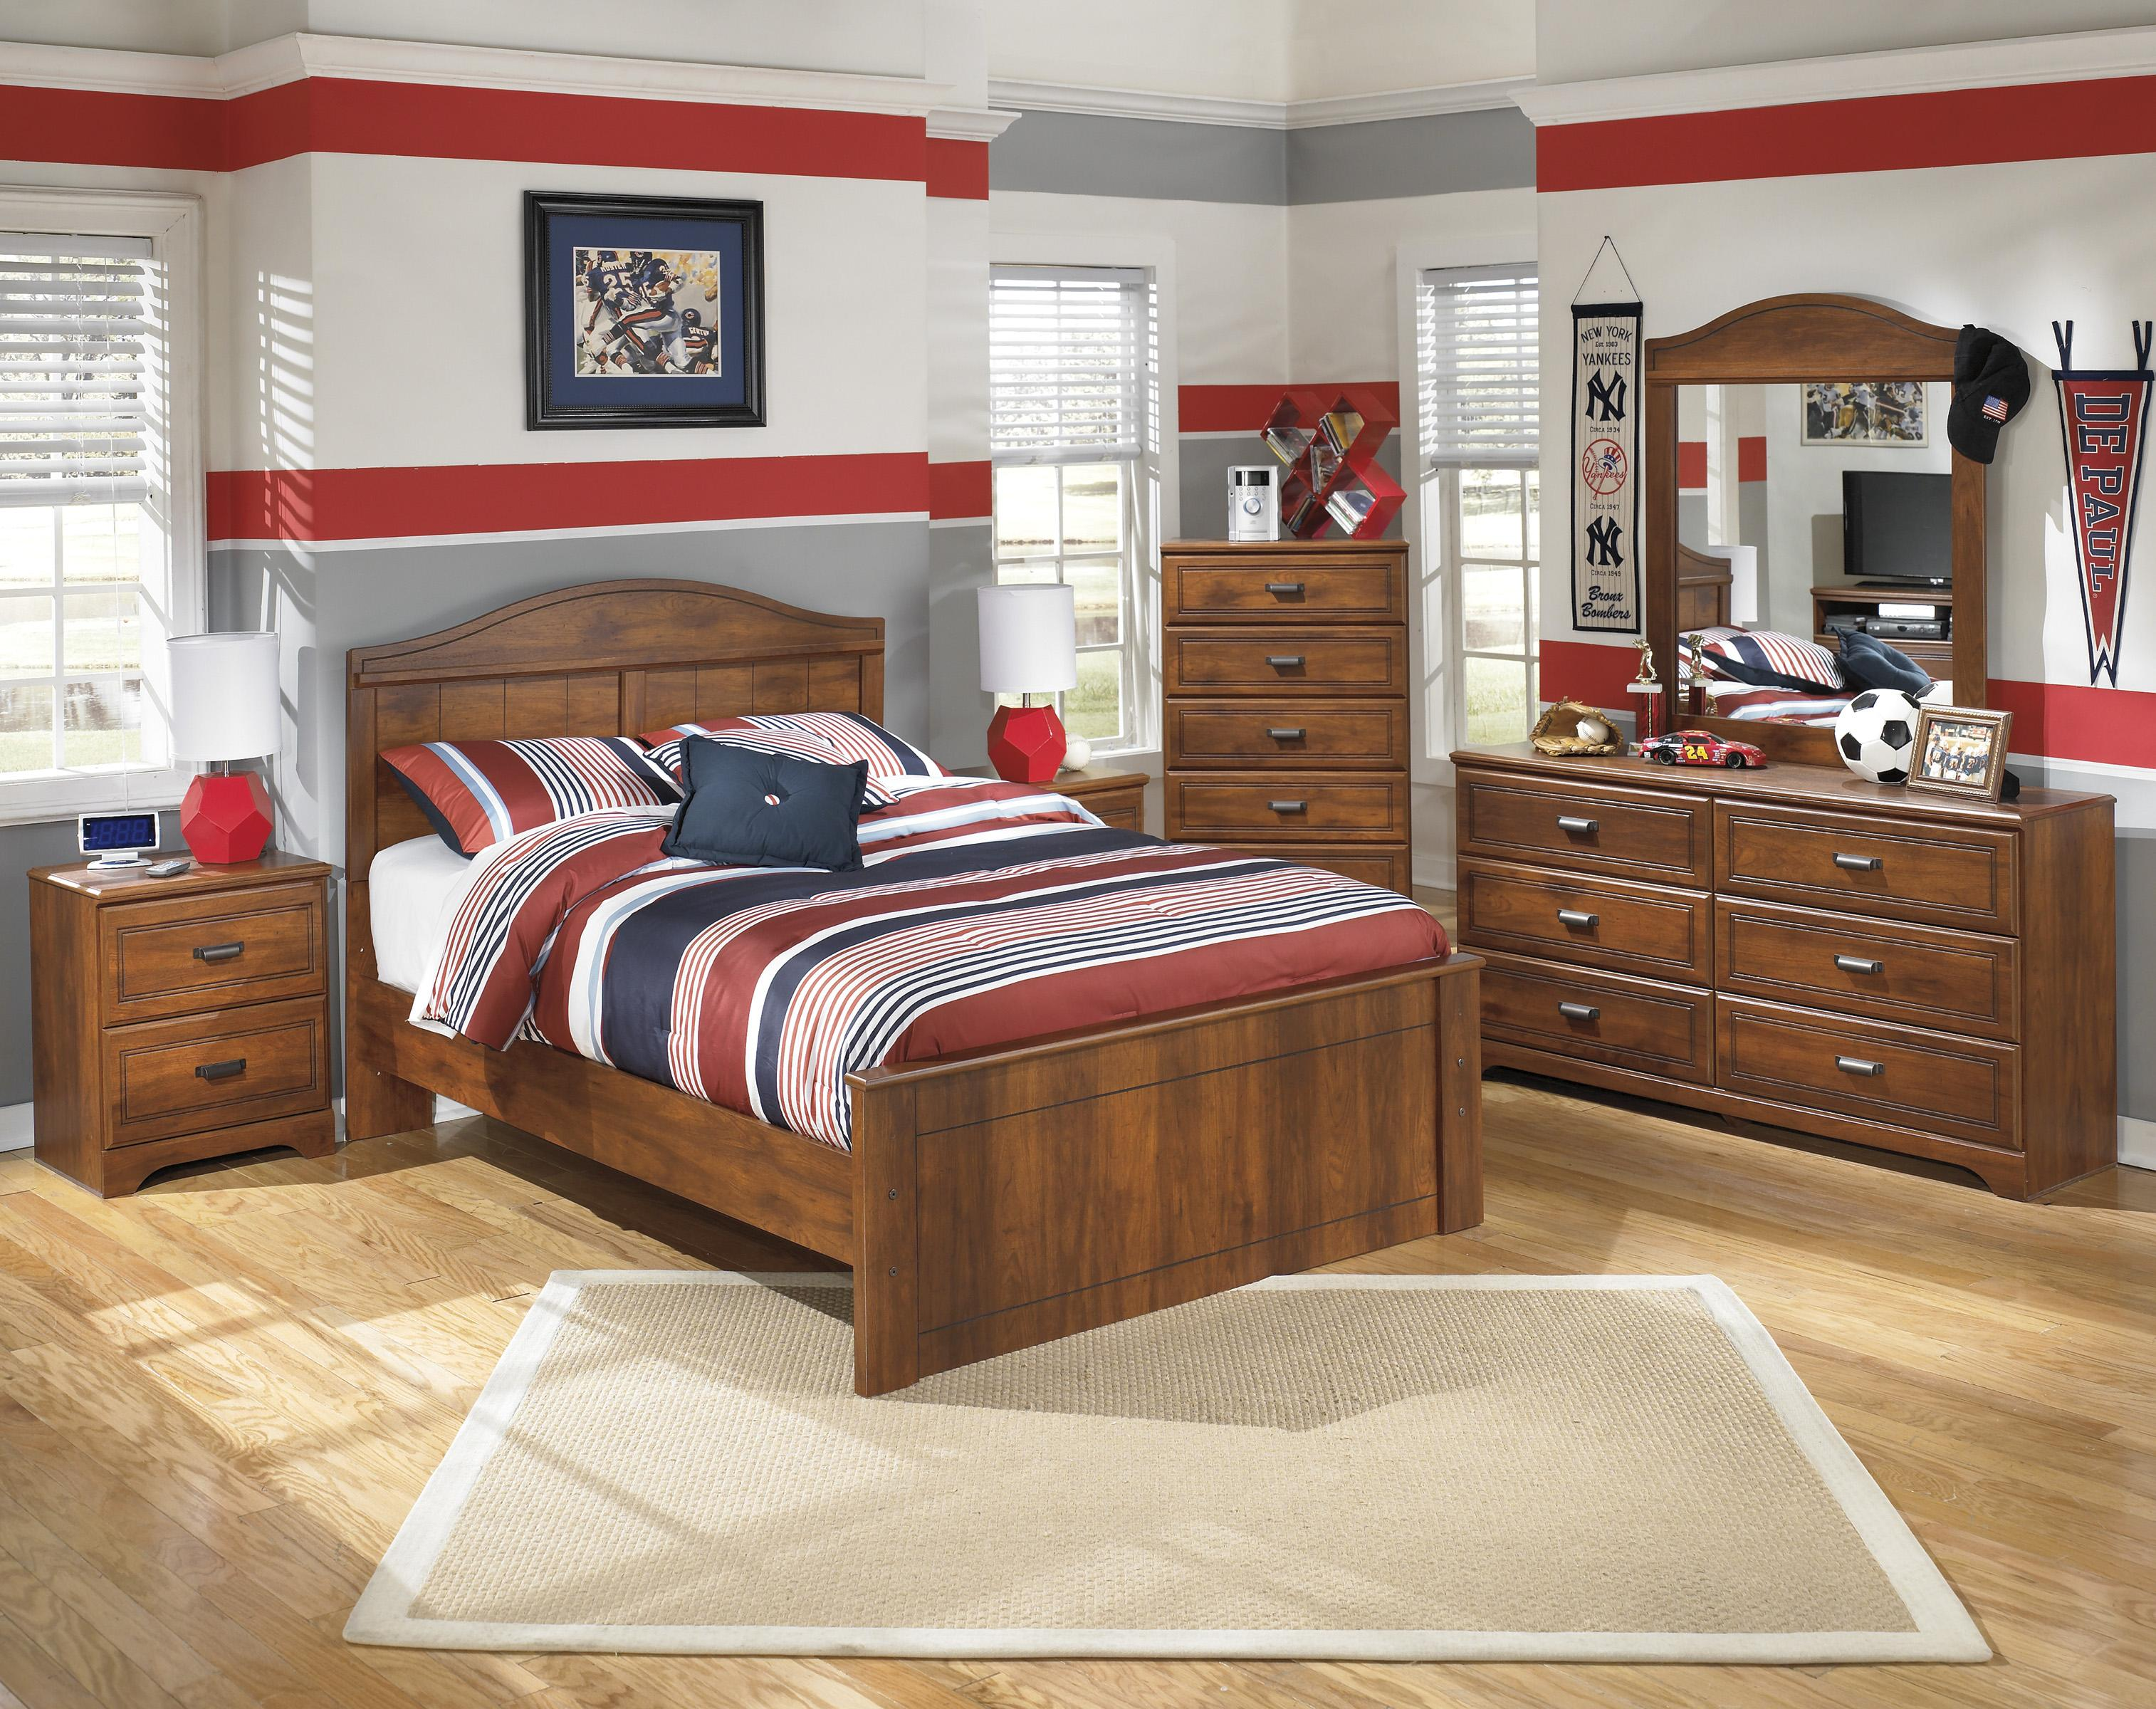 Signature Design by Ashley Barchan Full Bedroom Group - Item Number: B228 F Bedroom Group 1